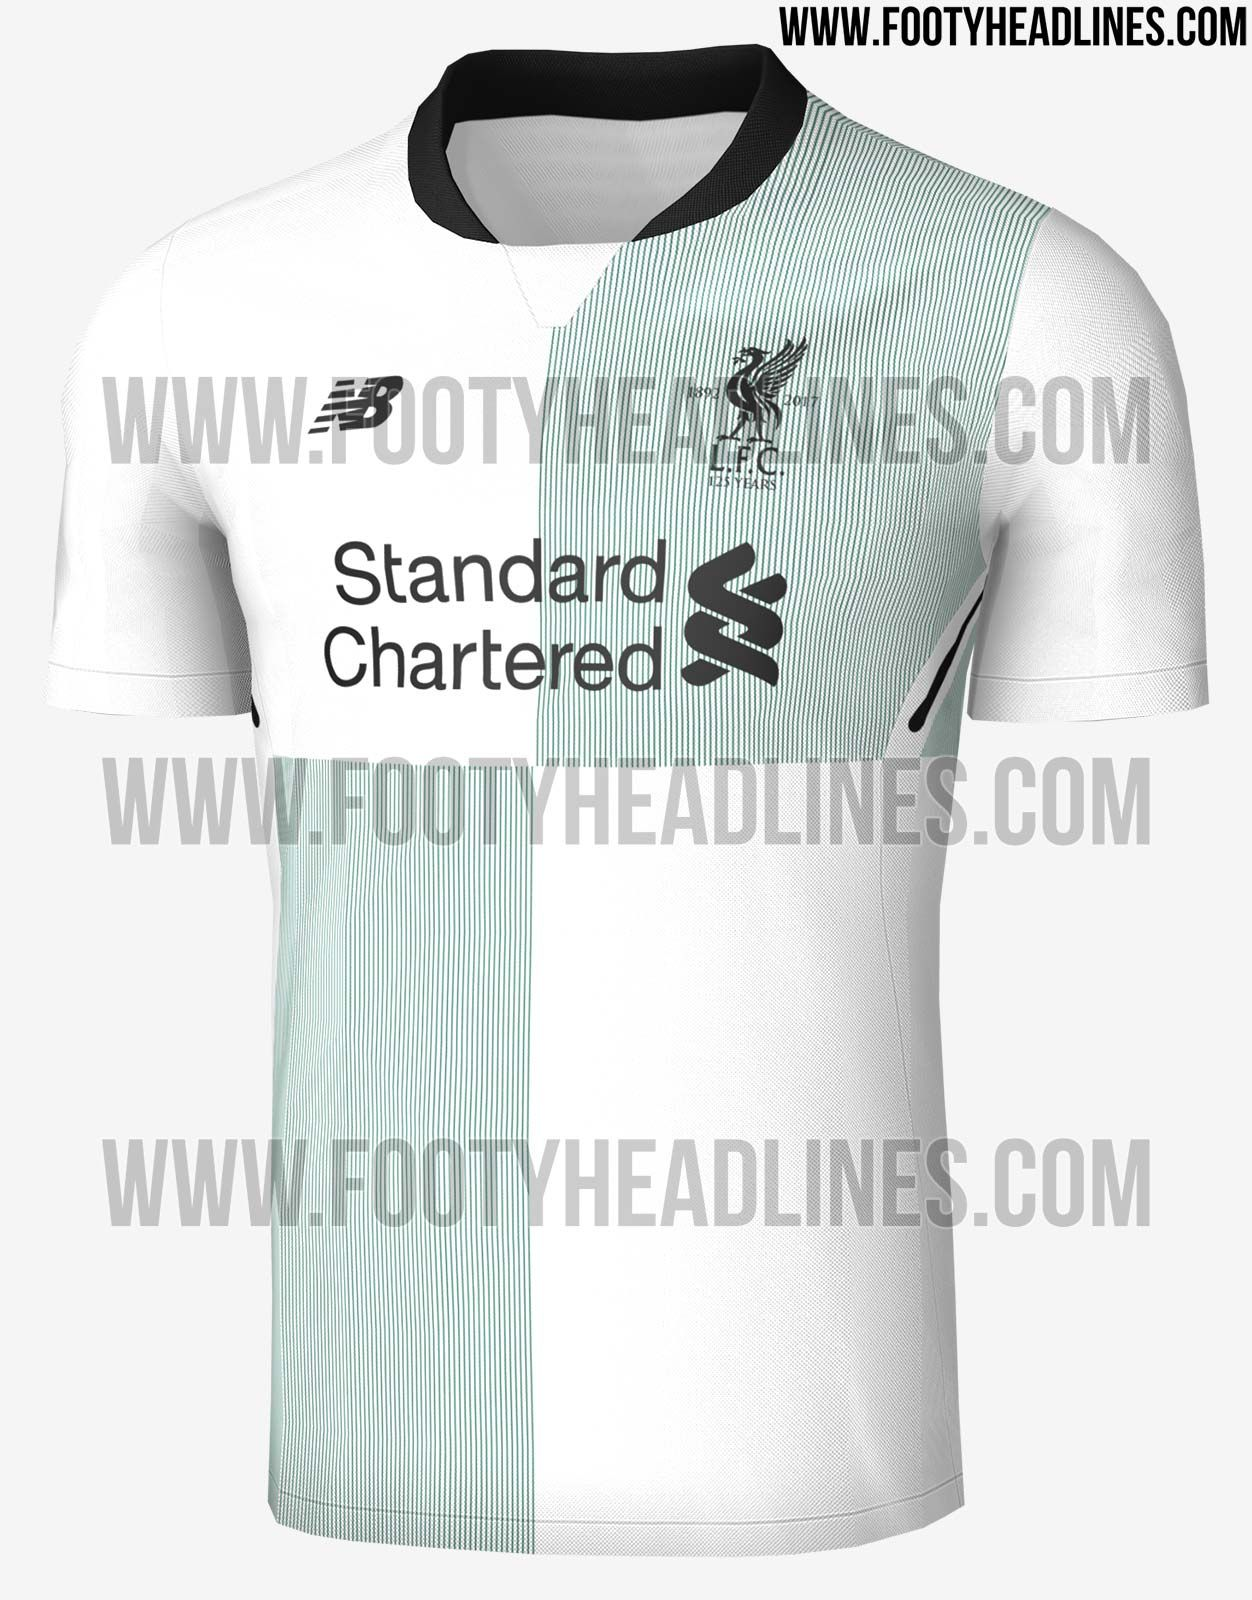 9c51147e2 The Liverpool 17-18 away kit introduces a 1990s-inspired look to celebrate  the